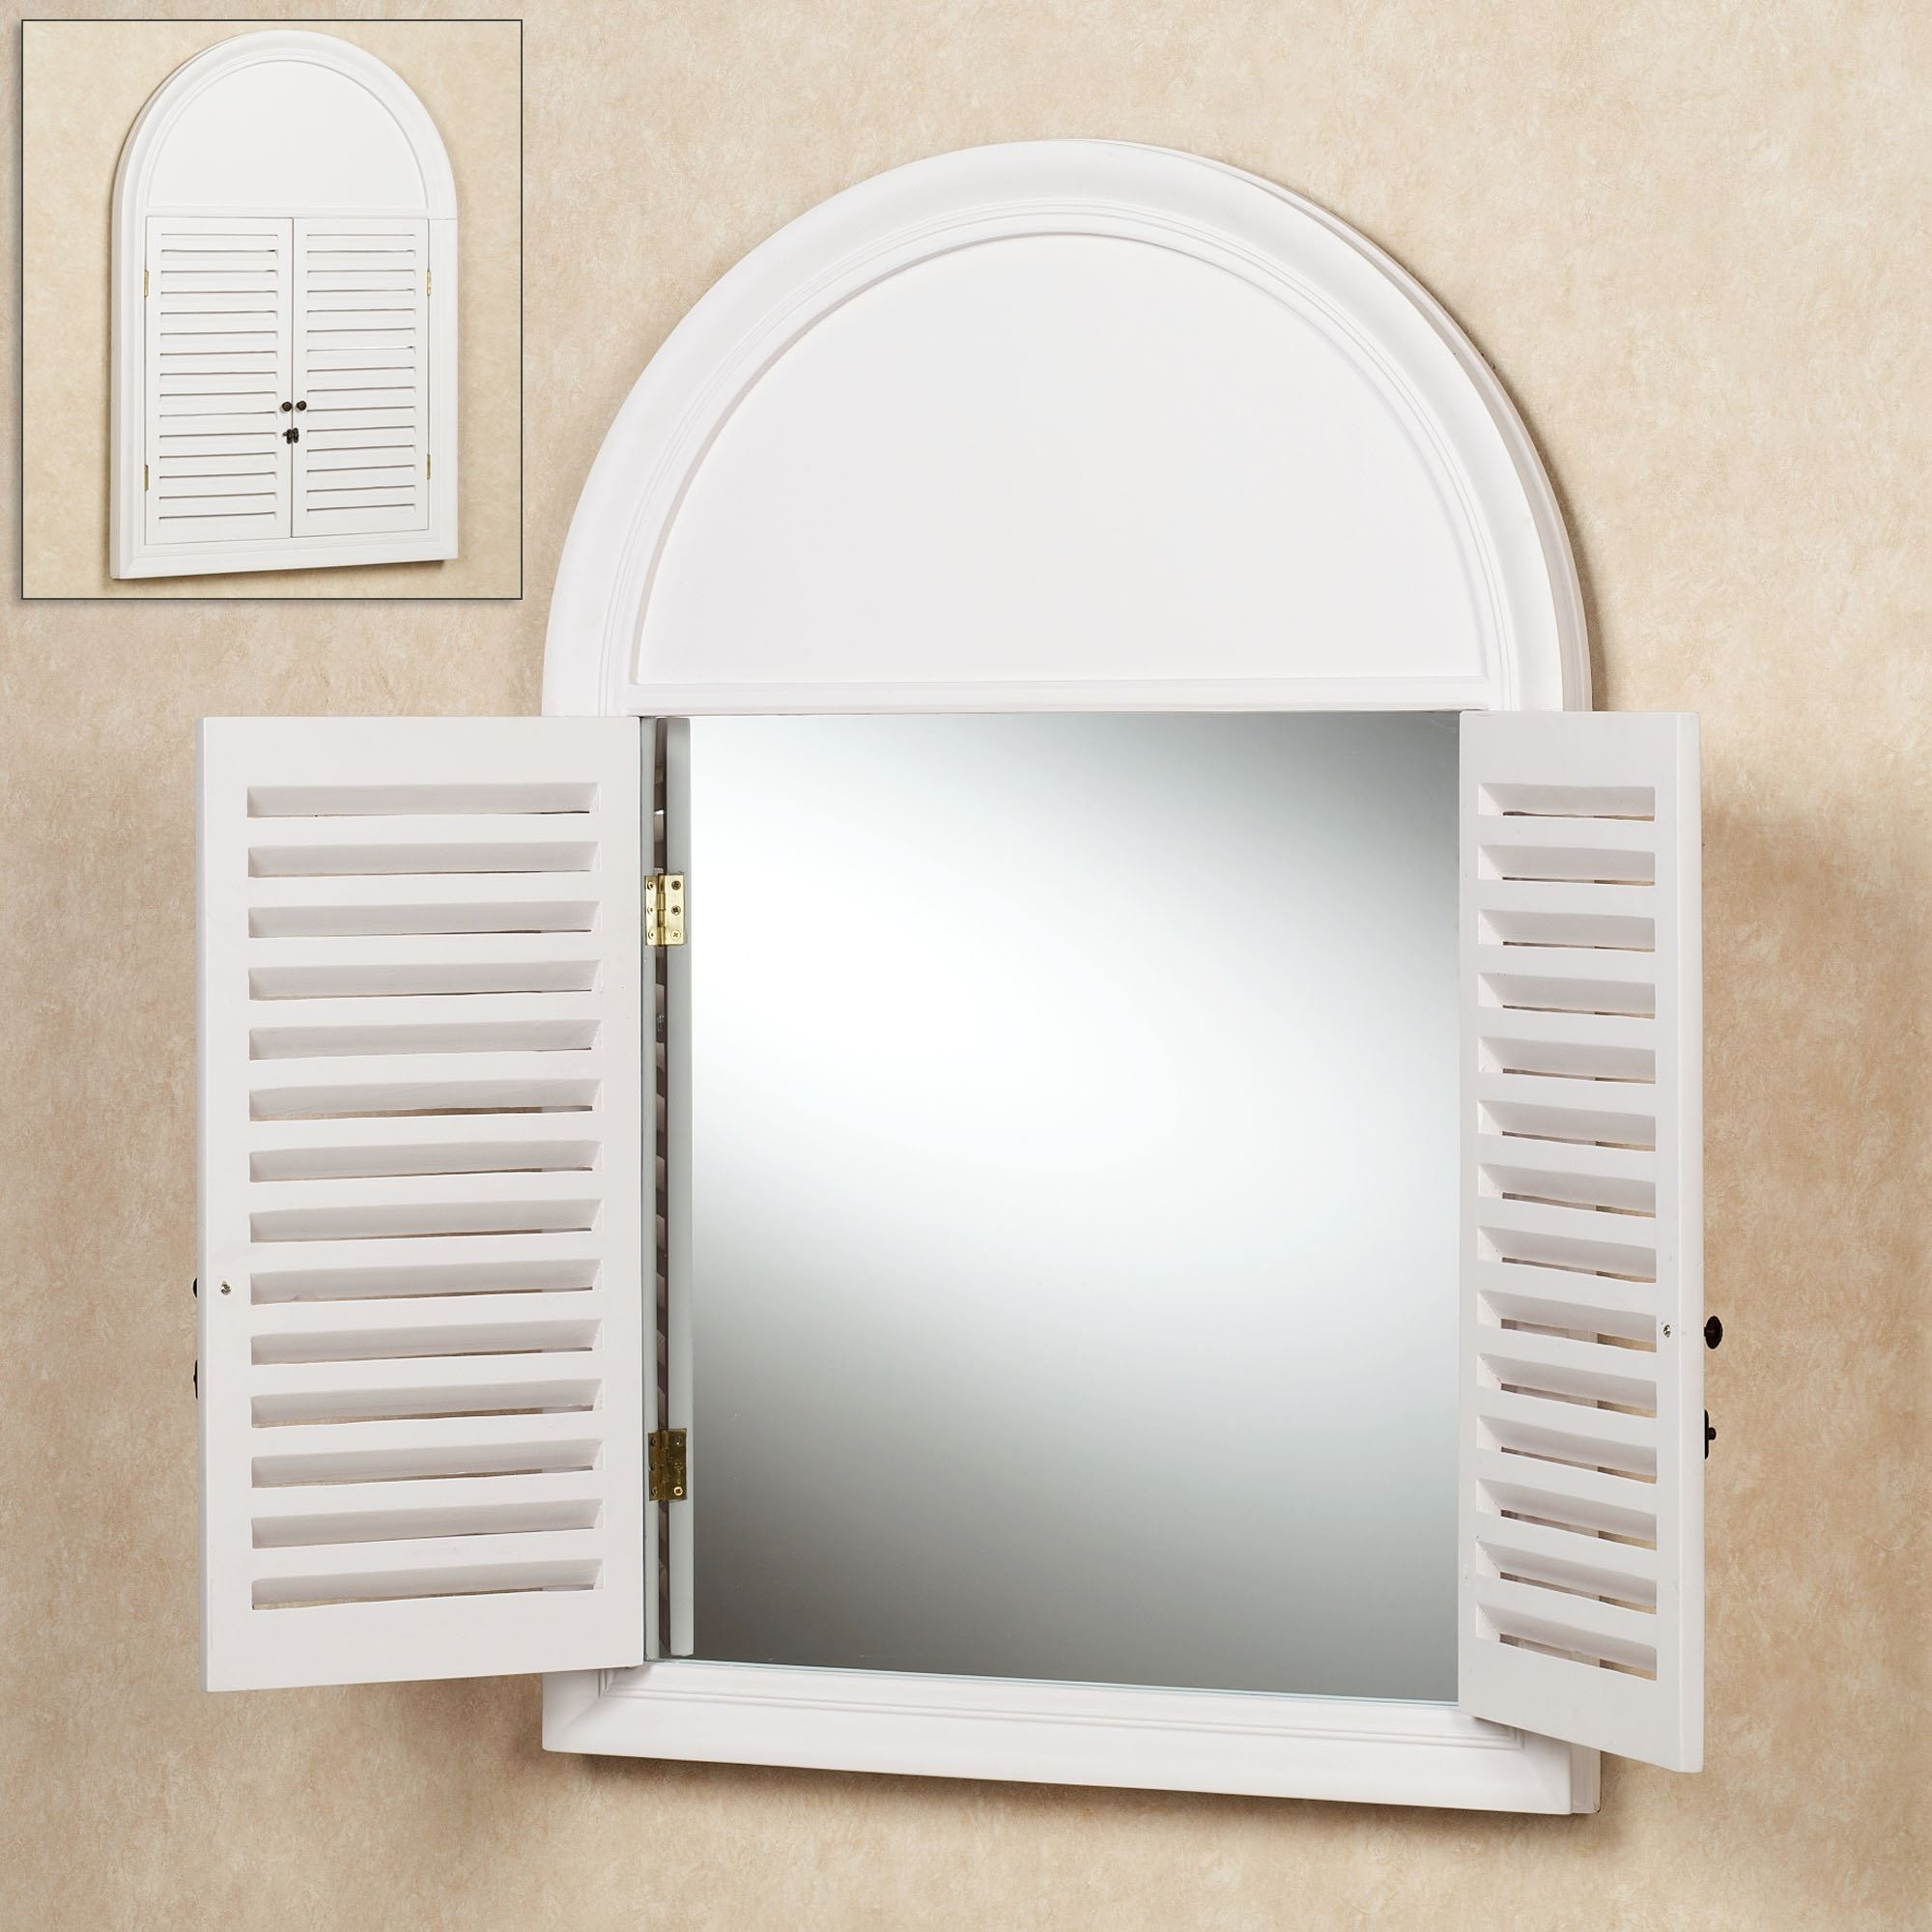 Arched Window Mirror With Shutters Mirrors From Windows Vintage Pertaining To Wall Mirror With Shutters (Image 5 of 15)